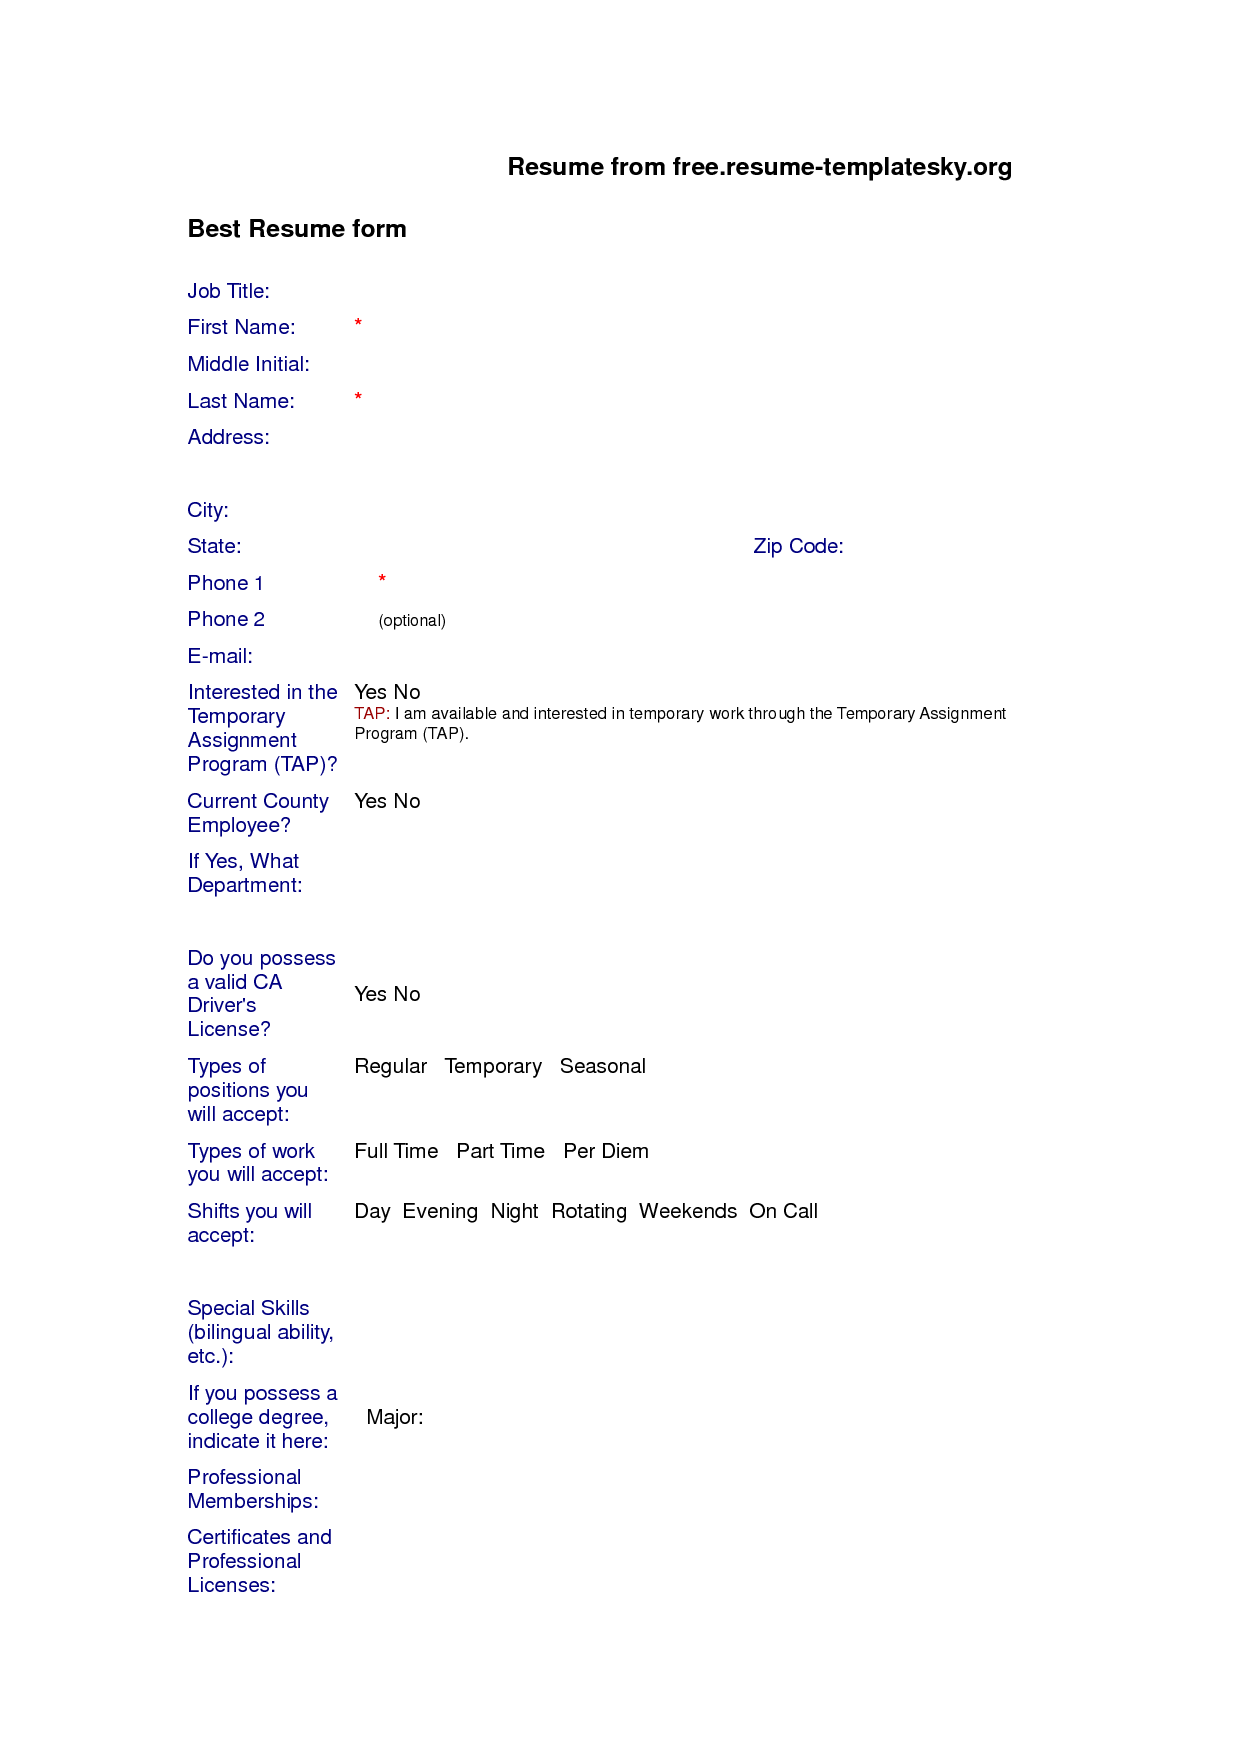 Blank Resume Format Free Download resumecareerinfo – Blank Resume Templates